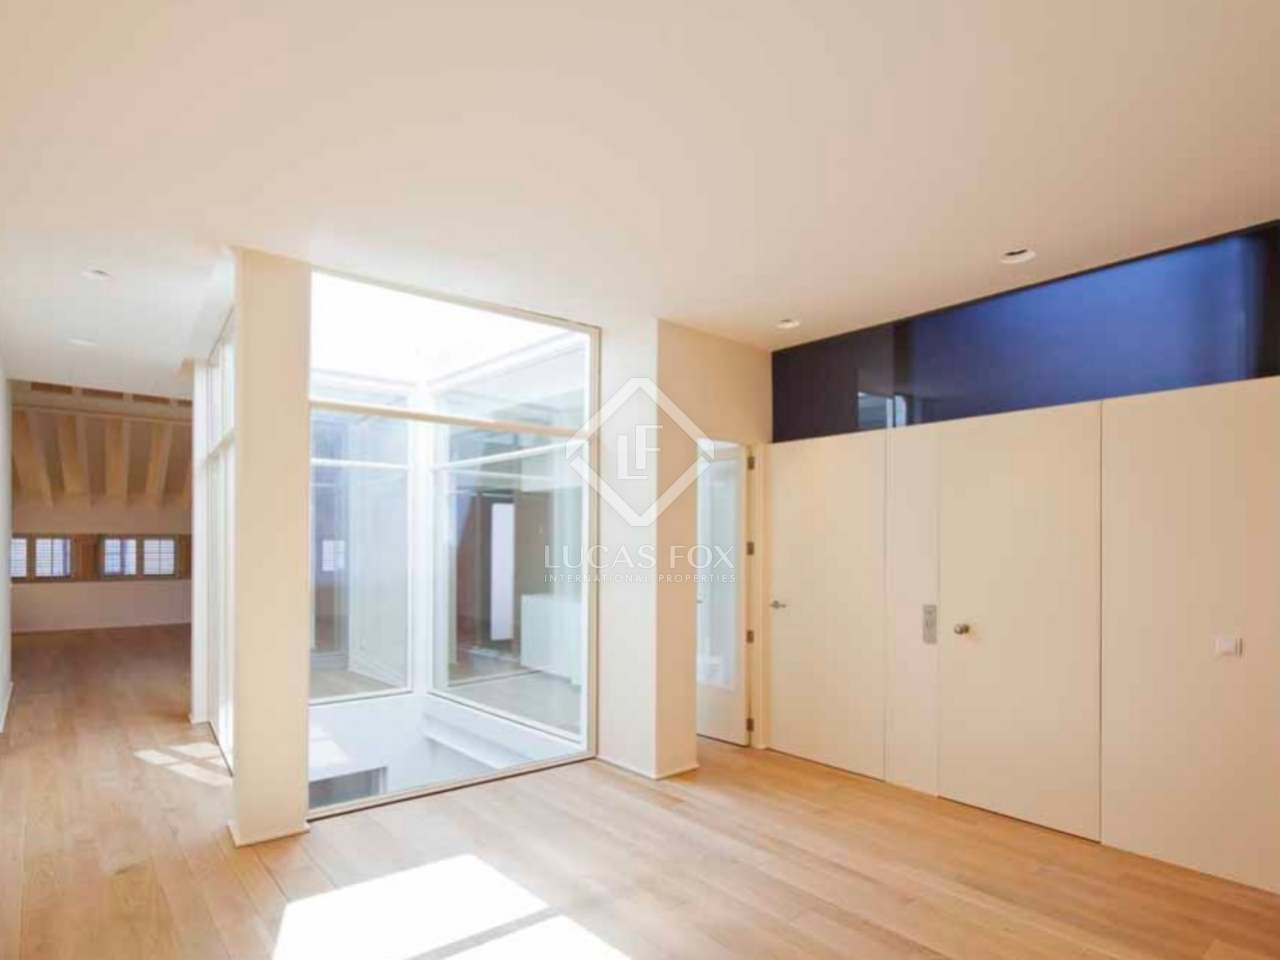 Penthouse apartment for sale in centre of palma mallorca for Penthouse apartment for sale